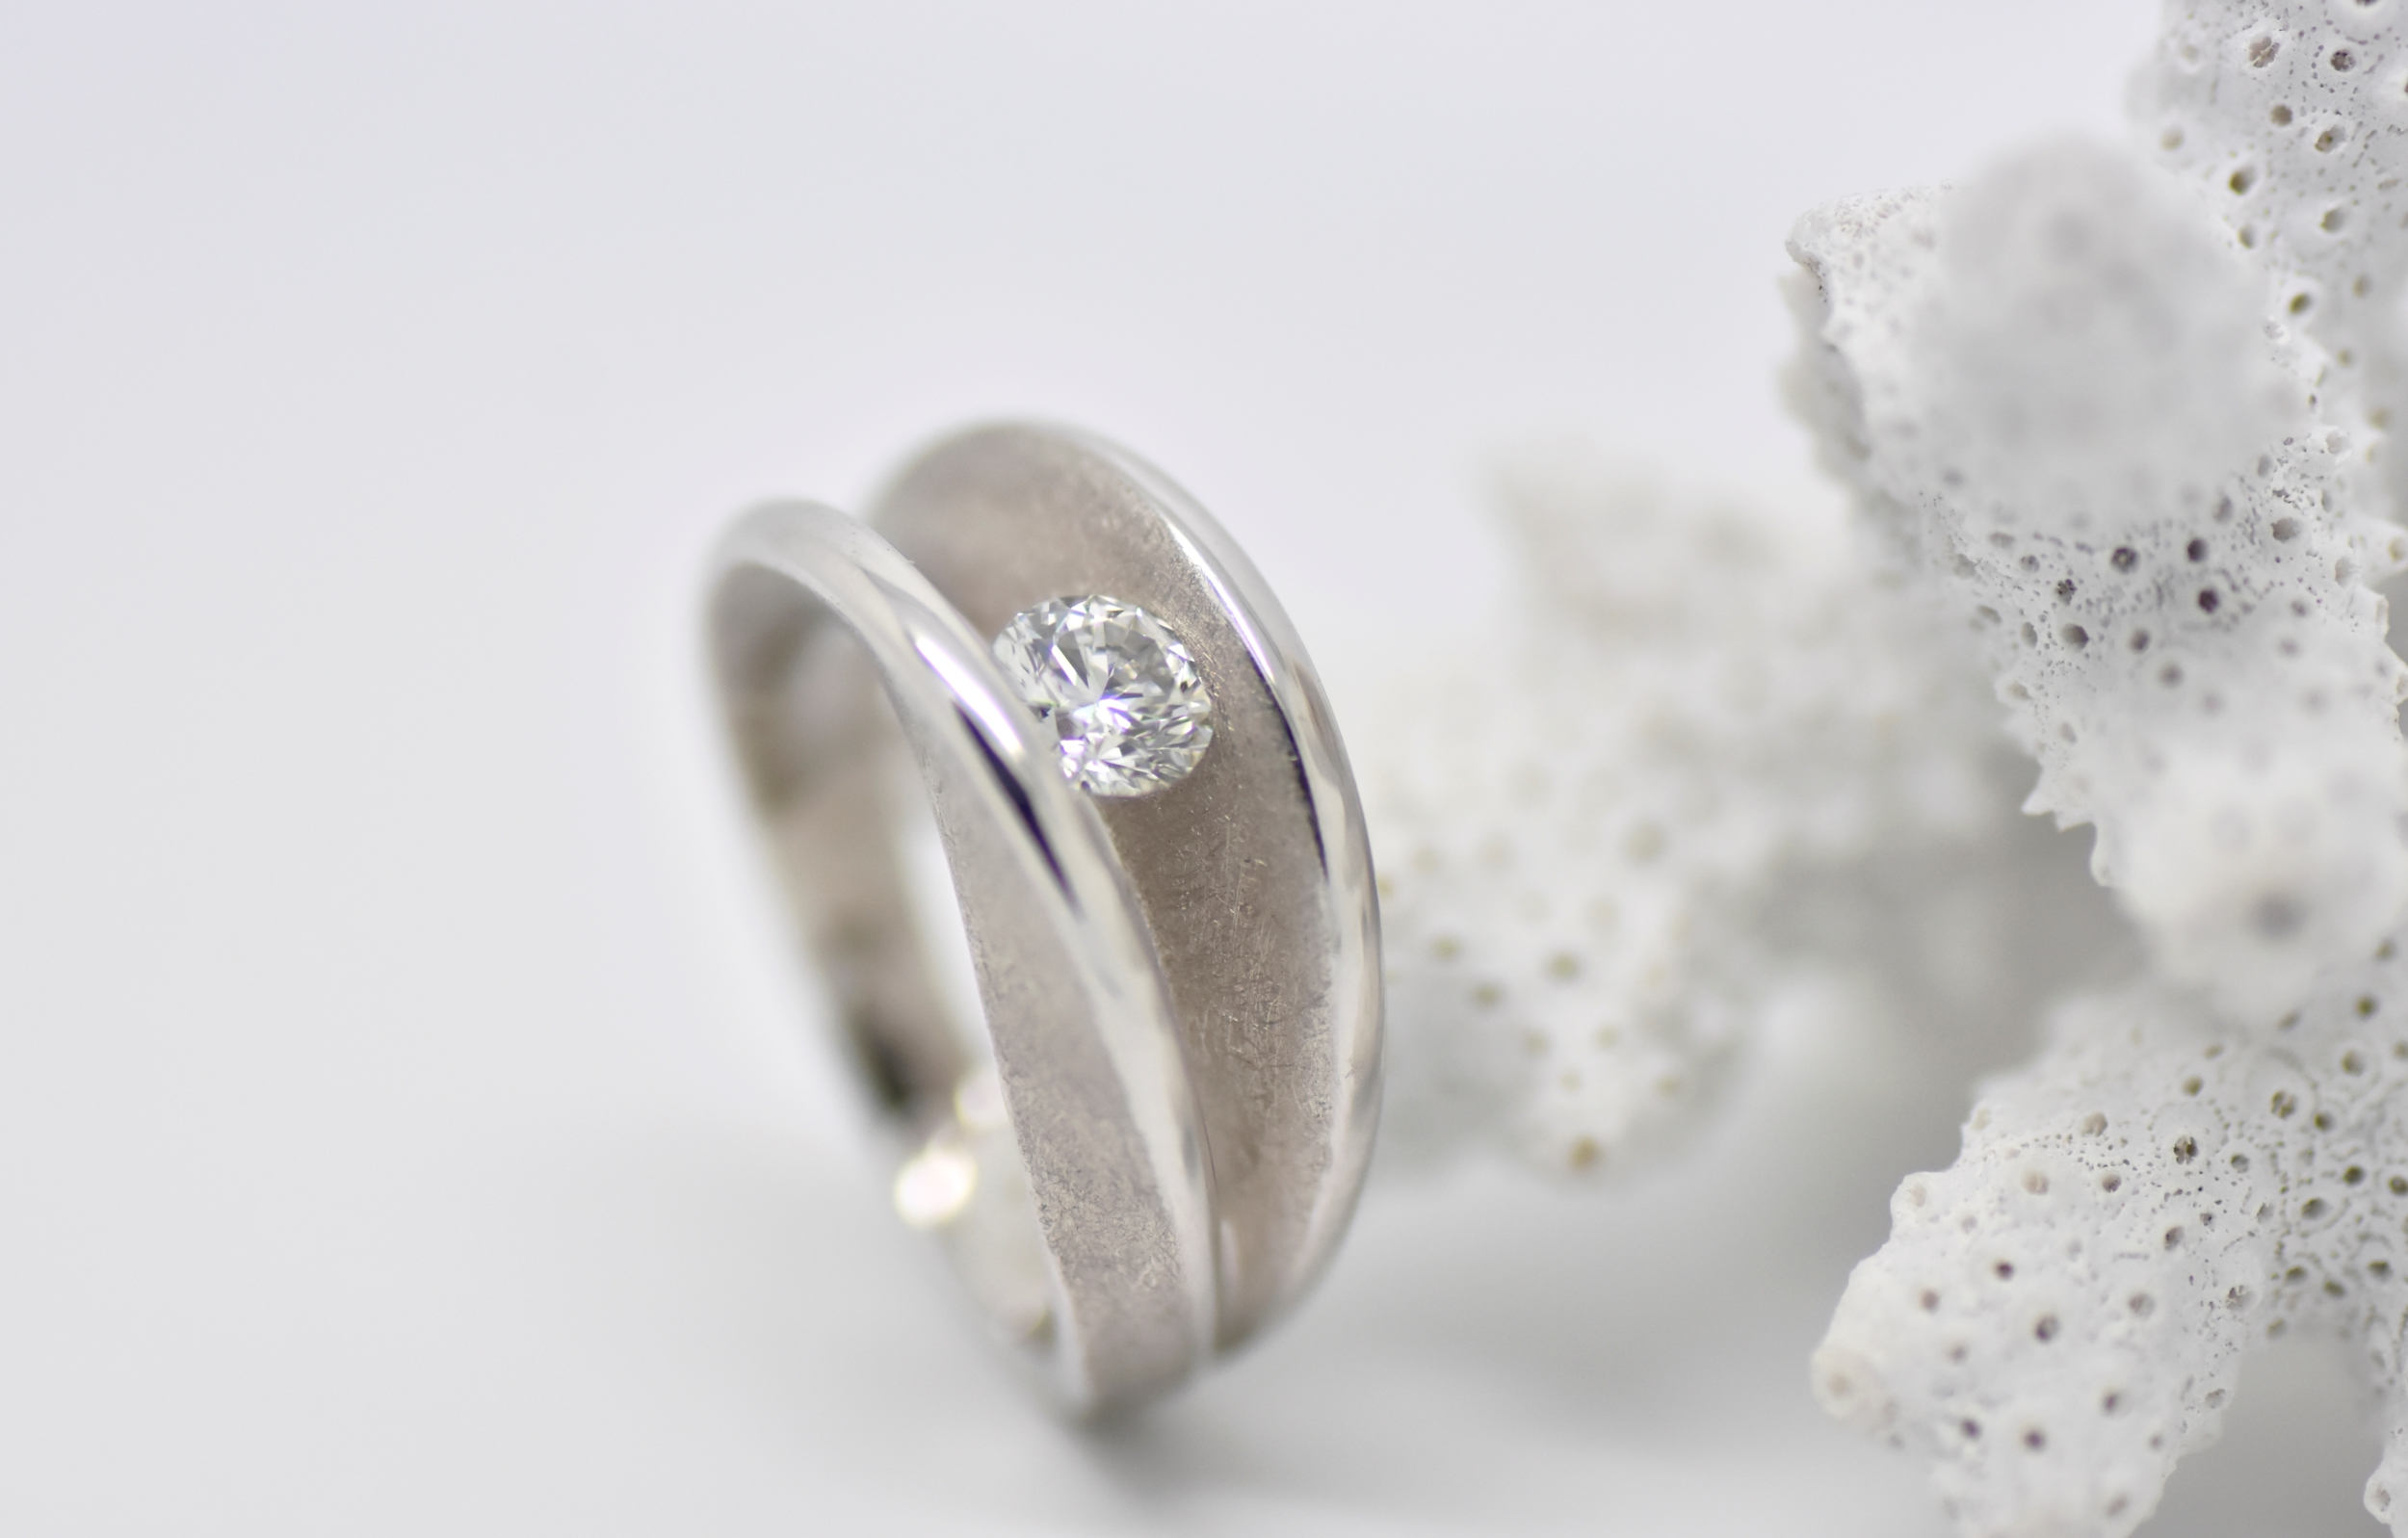 KISS white gold ring set with 1 solitaire diamond